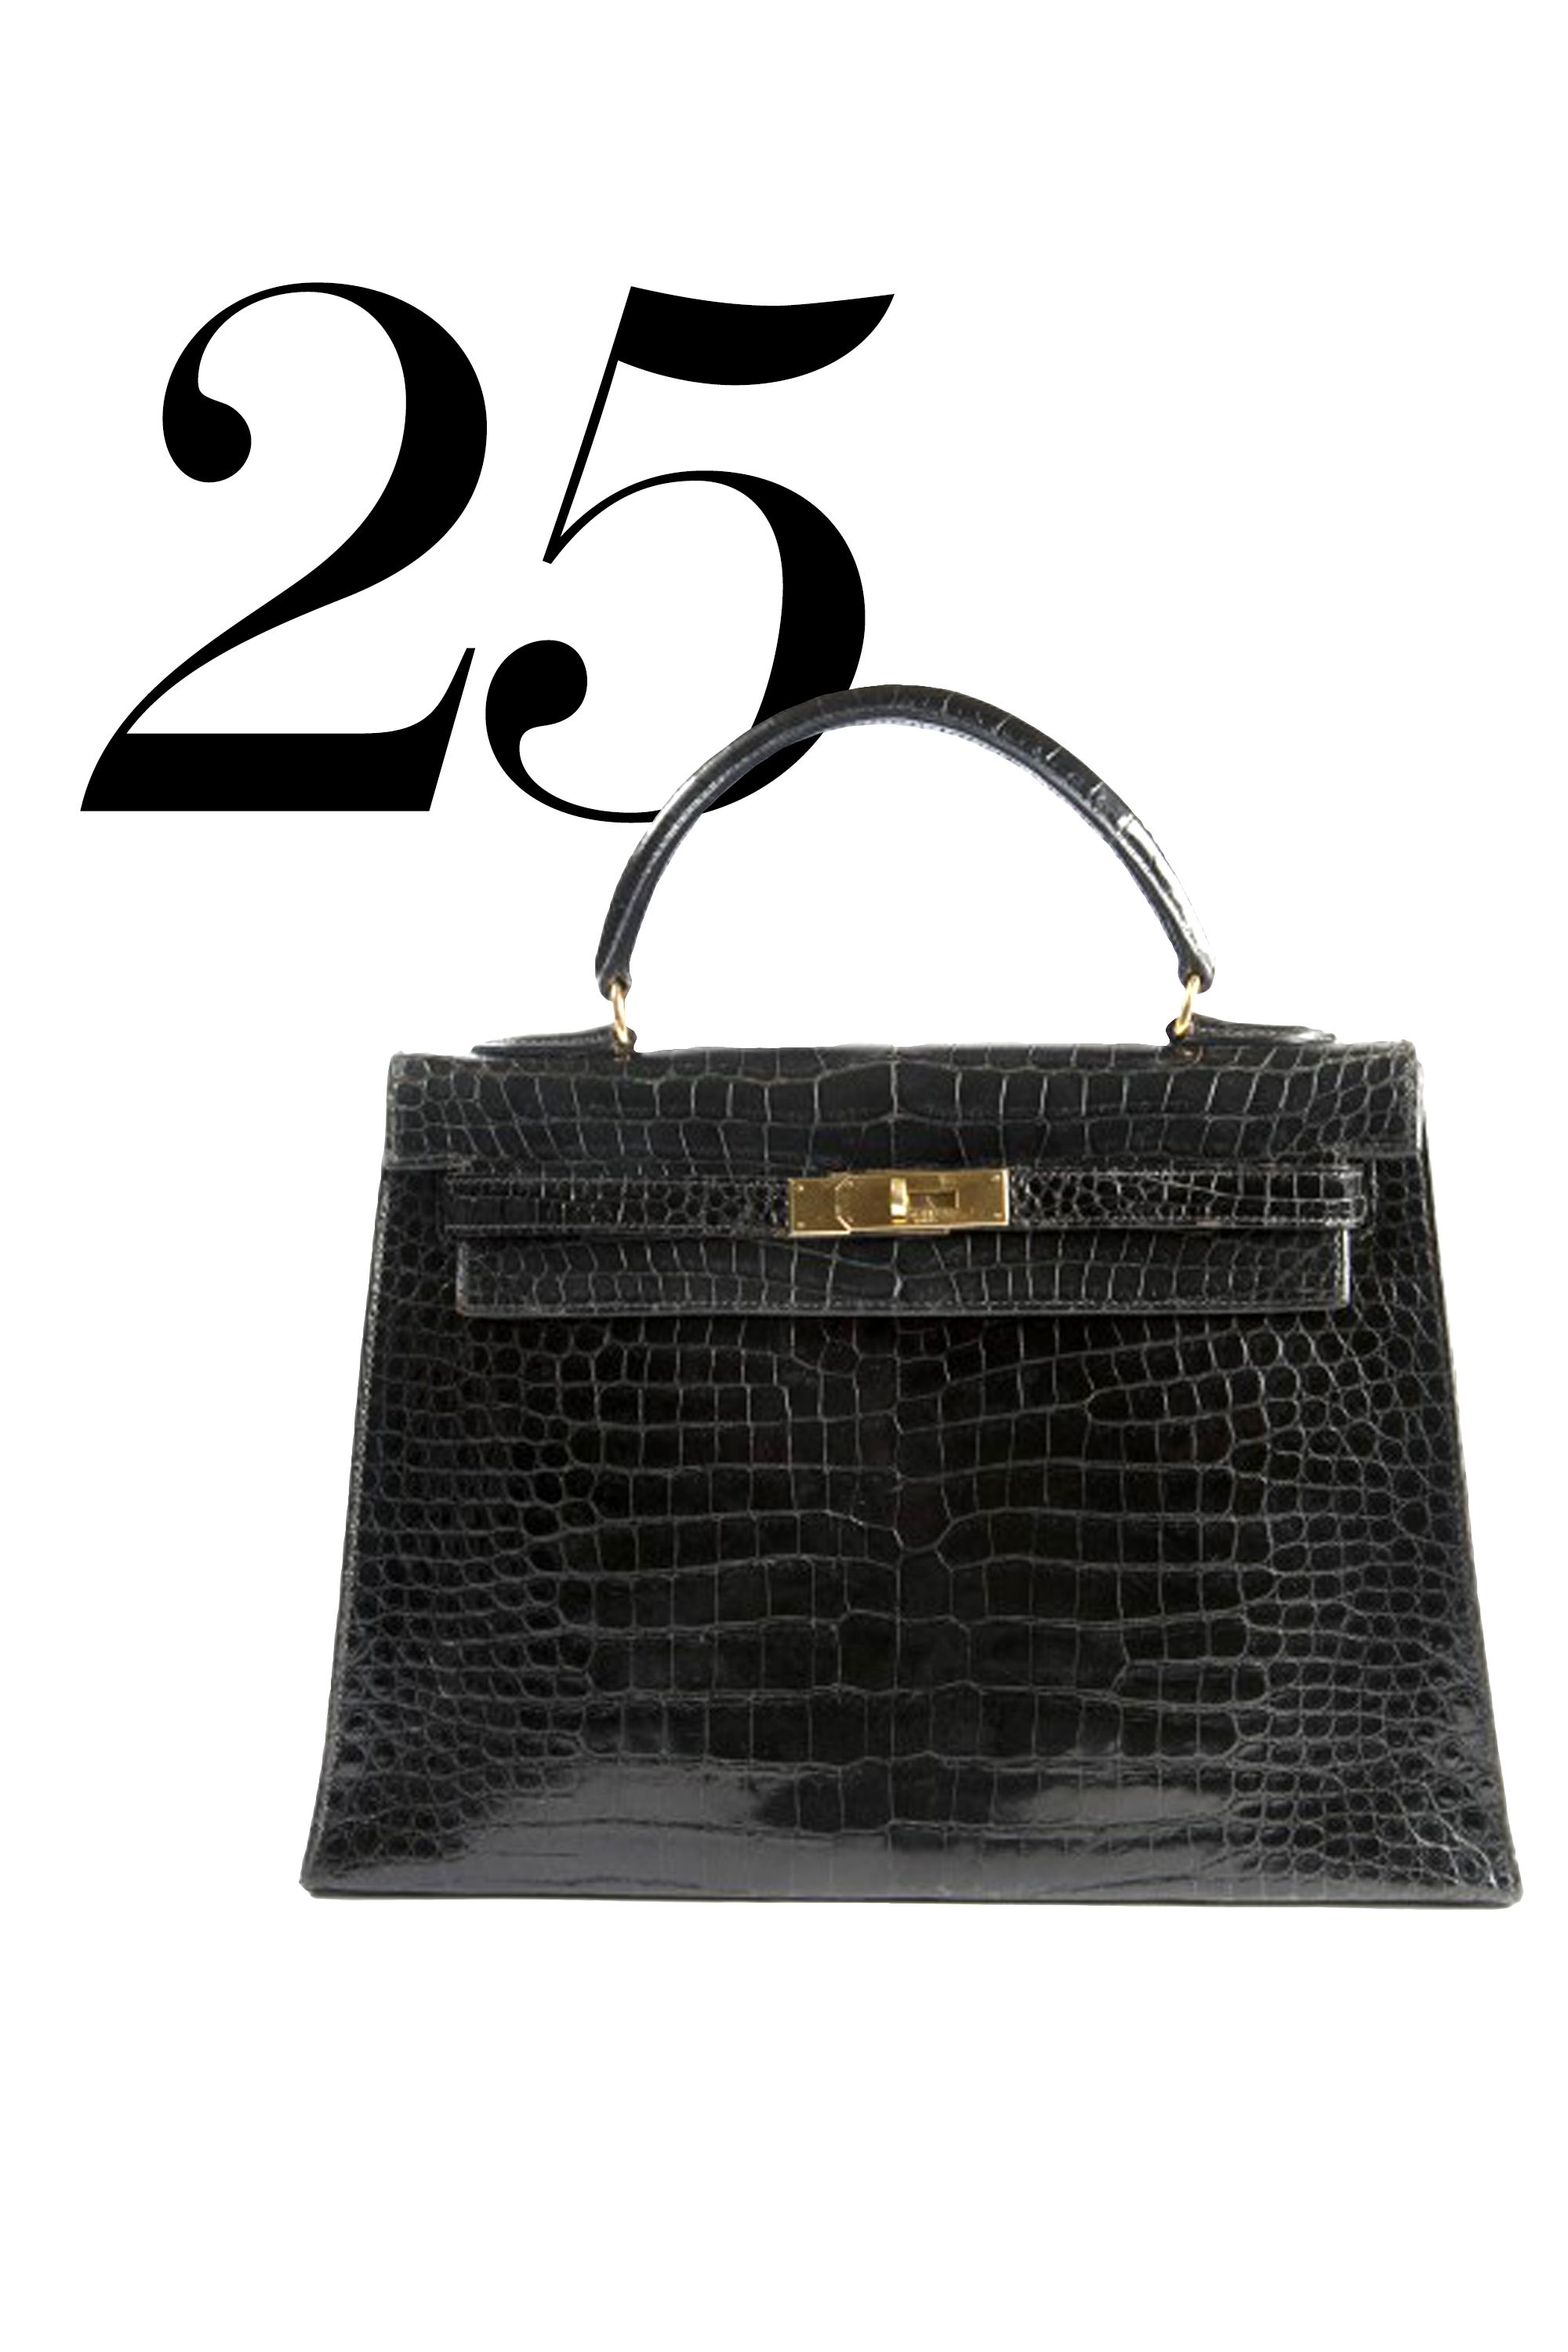 """Quarter-life crisis on the horizon? Retail therapy to the rescue! Buy yourself that spendy tote you'll love for the next 50 years. Go for something classic that you can carry forever—and then pass on.<strong>Splurge On</strong>: Hermes Kelly Bag, $20,399, <a target=""""_blank"""" href=""""http://www.farfetch.com/shopping/women/Hermes-Vintage-Kelly-bag-item-10764926.aspx?gclid=CjwKEAjw2ImsBRCnjq70n_amv14SJAChXijNoZnoY6zm-RGwRMjewwXlgcW9lAK8gSdXaoBwOYlZwxoCwnfw_wcB&amp&#x3B;fsb=1&amp&#x3B;ef_id=VXXLKwAAAVx1213s:20150618163426:s """">farfetch.com</a>"""